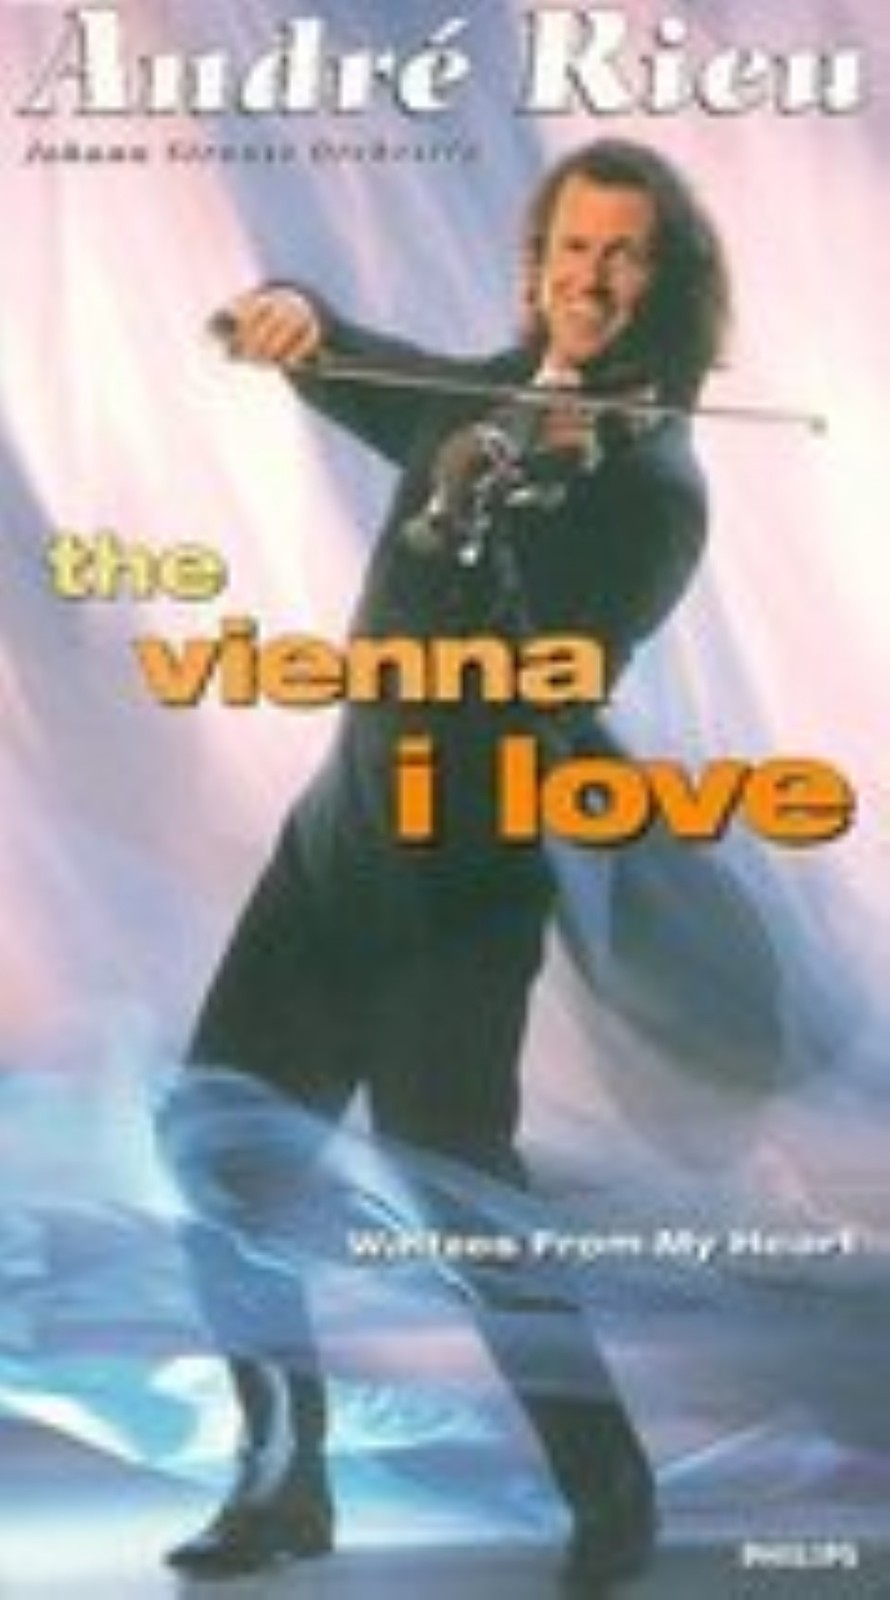 Andre Rieu: The Vienna I Love - Waltzes From My Heart Vhs